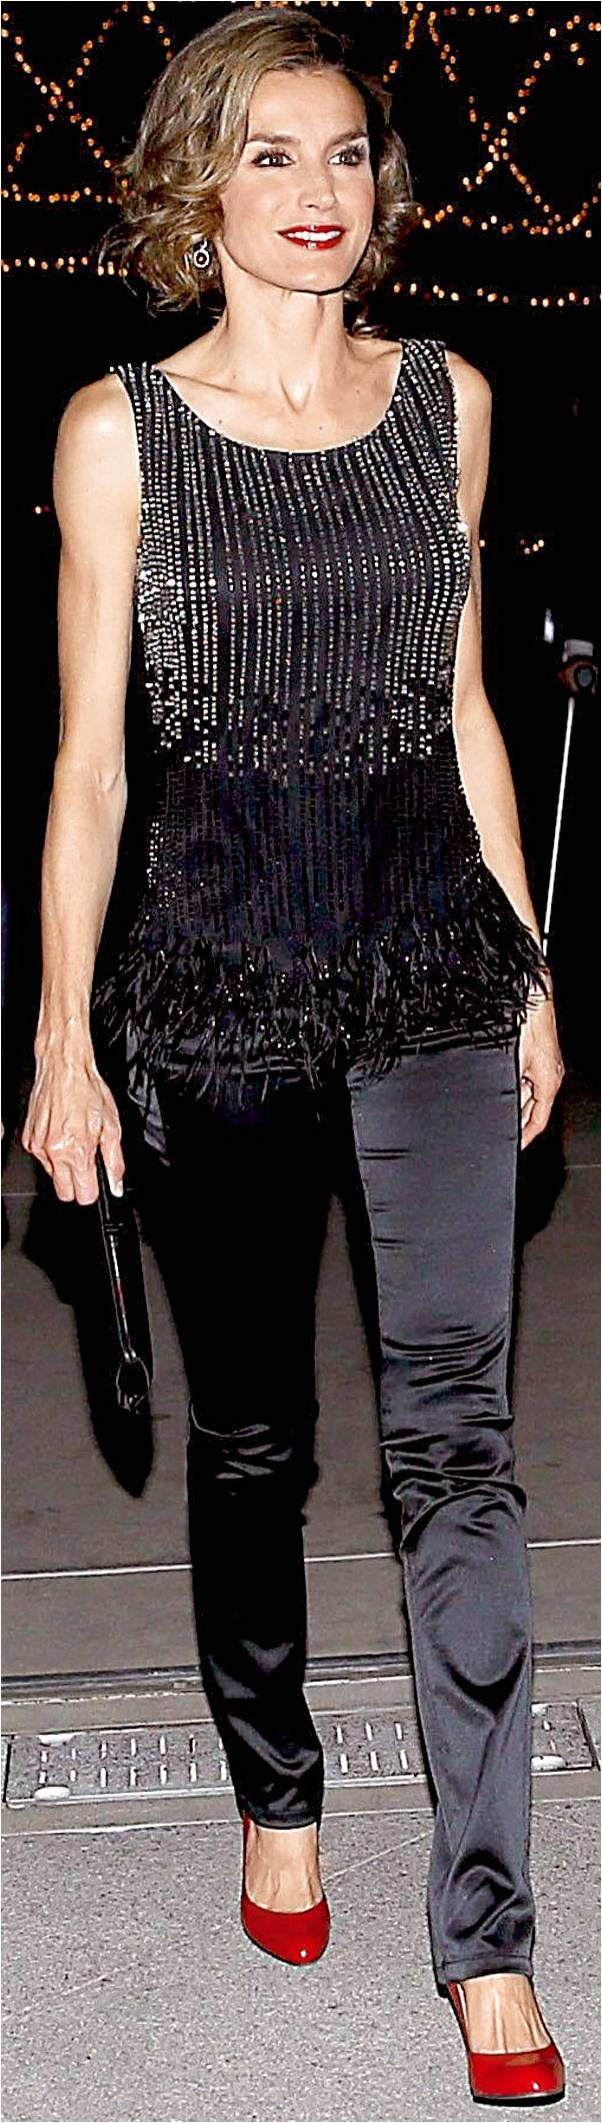 Queen Letizia of Spain. Night style.